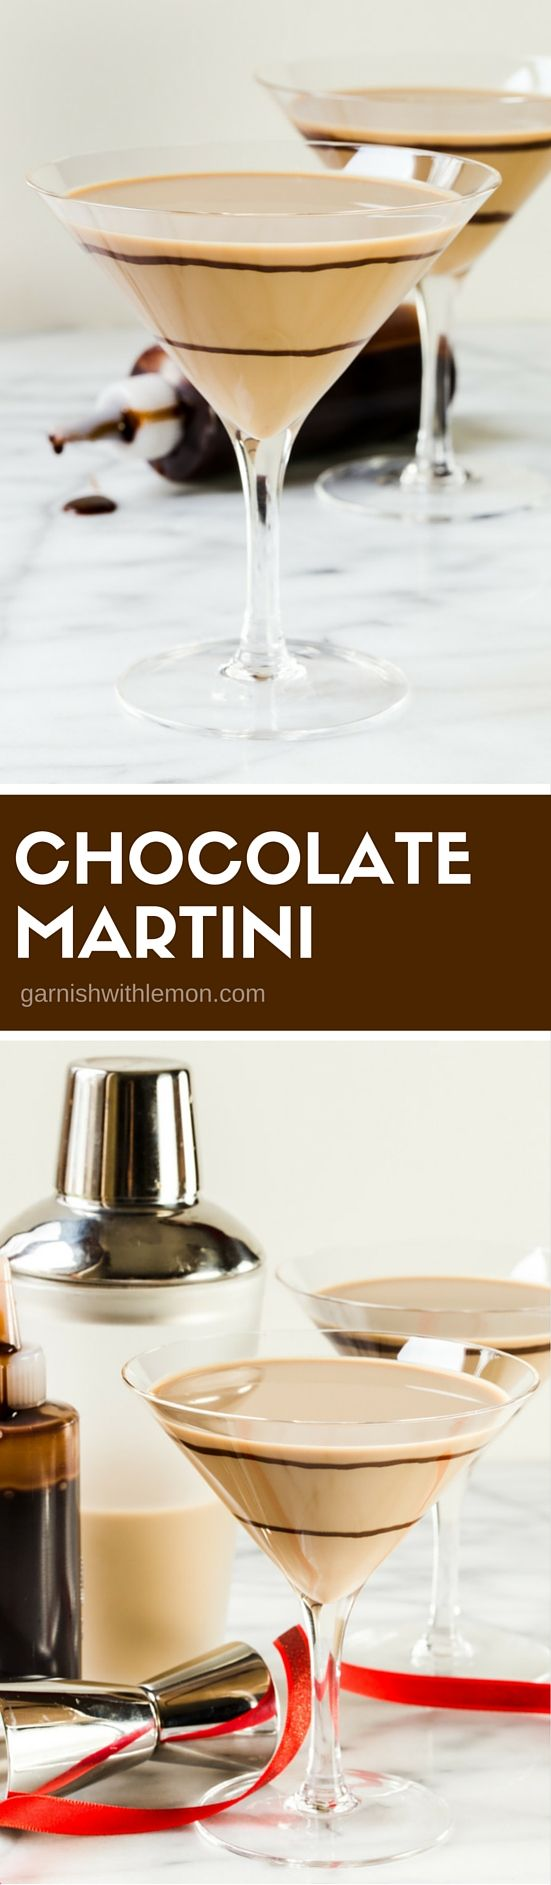 This Chocolate Martini recipe is one of our favorite ways to celebrate special occasions. Just measure, shake and pour!